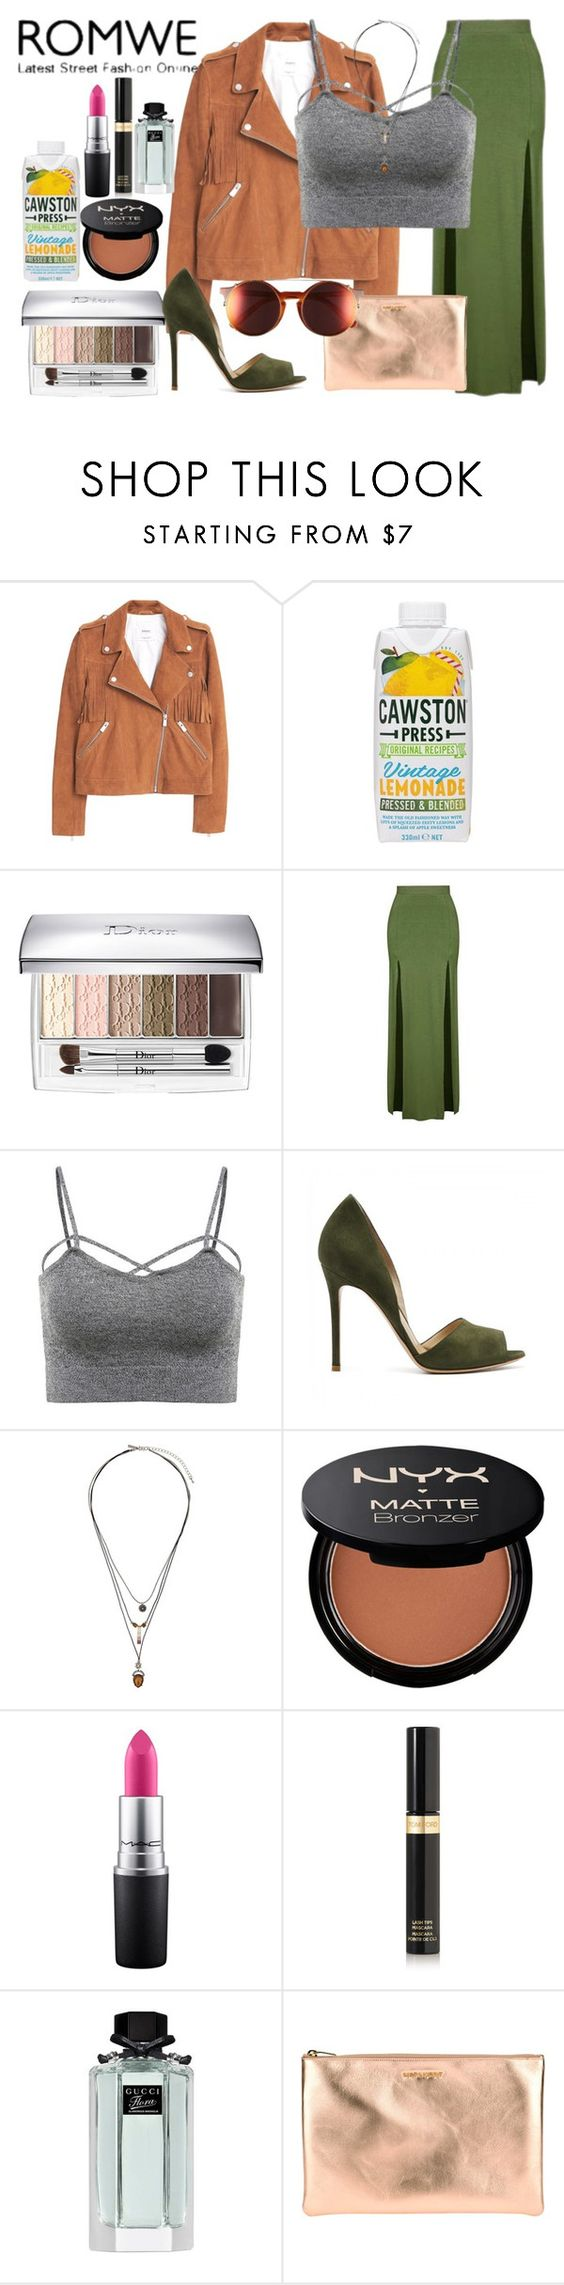 """""""Home."""" by carla-limitededition ❤ liked on Polyvore featuring MANGO, Christian Dior, Topshop, NYX, MAC Cosmetics, Tom Ford, Gucci, Yves Saint Laurent, Sunday Somewhere and romwe"""